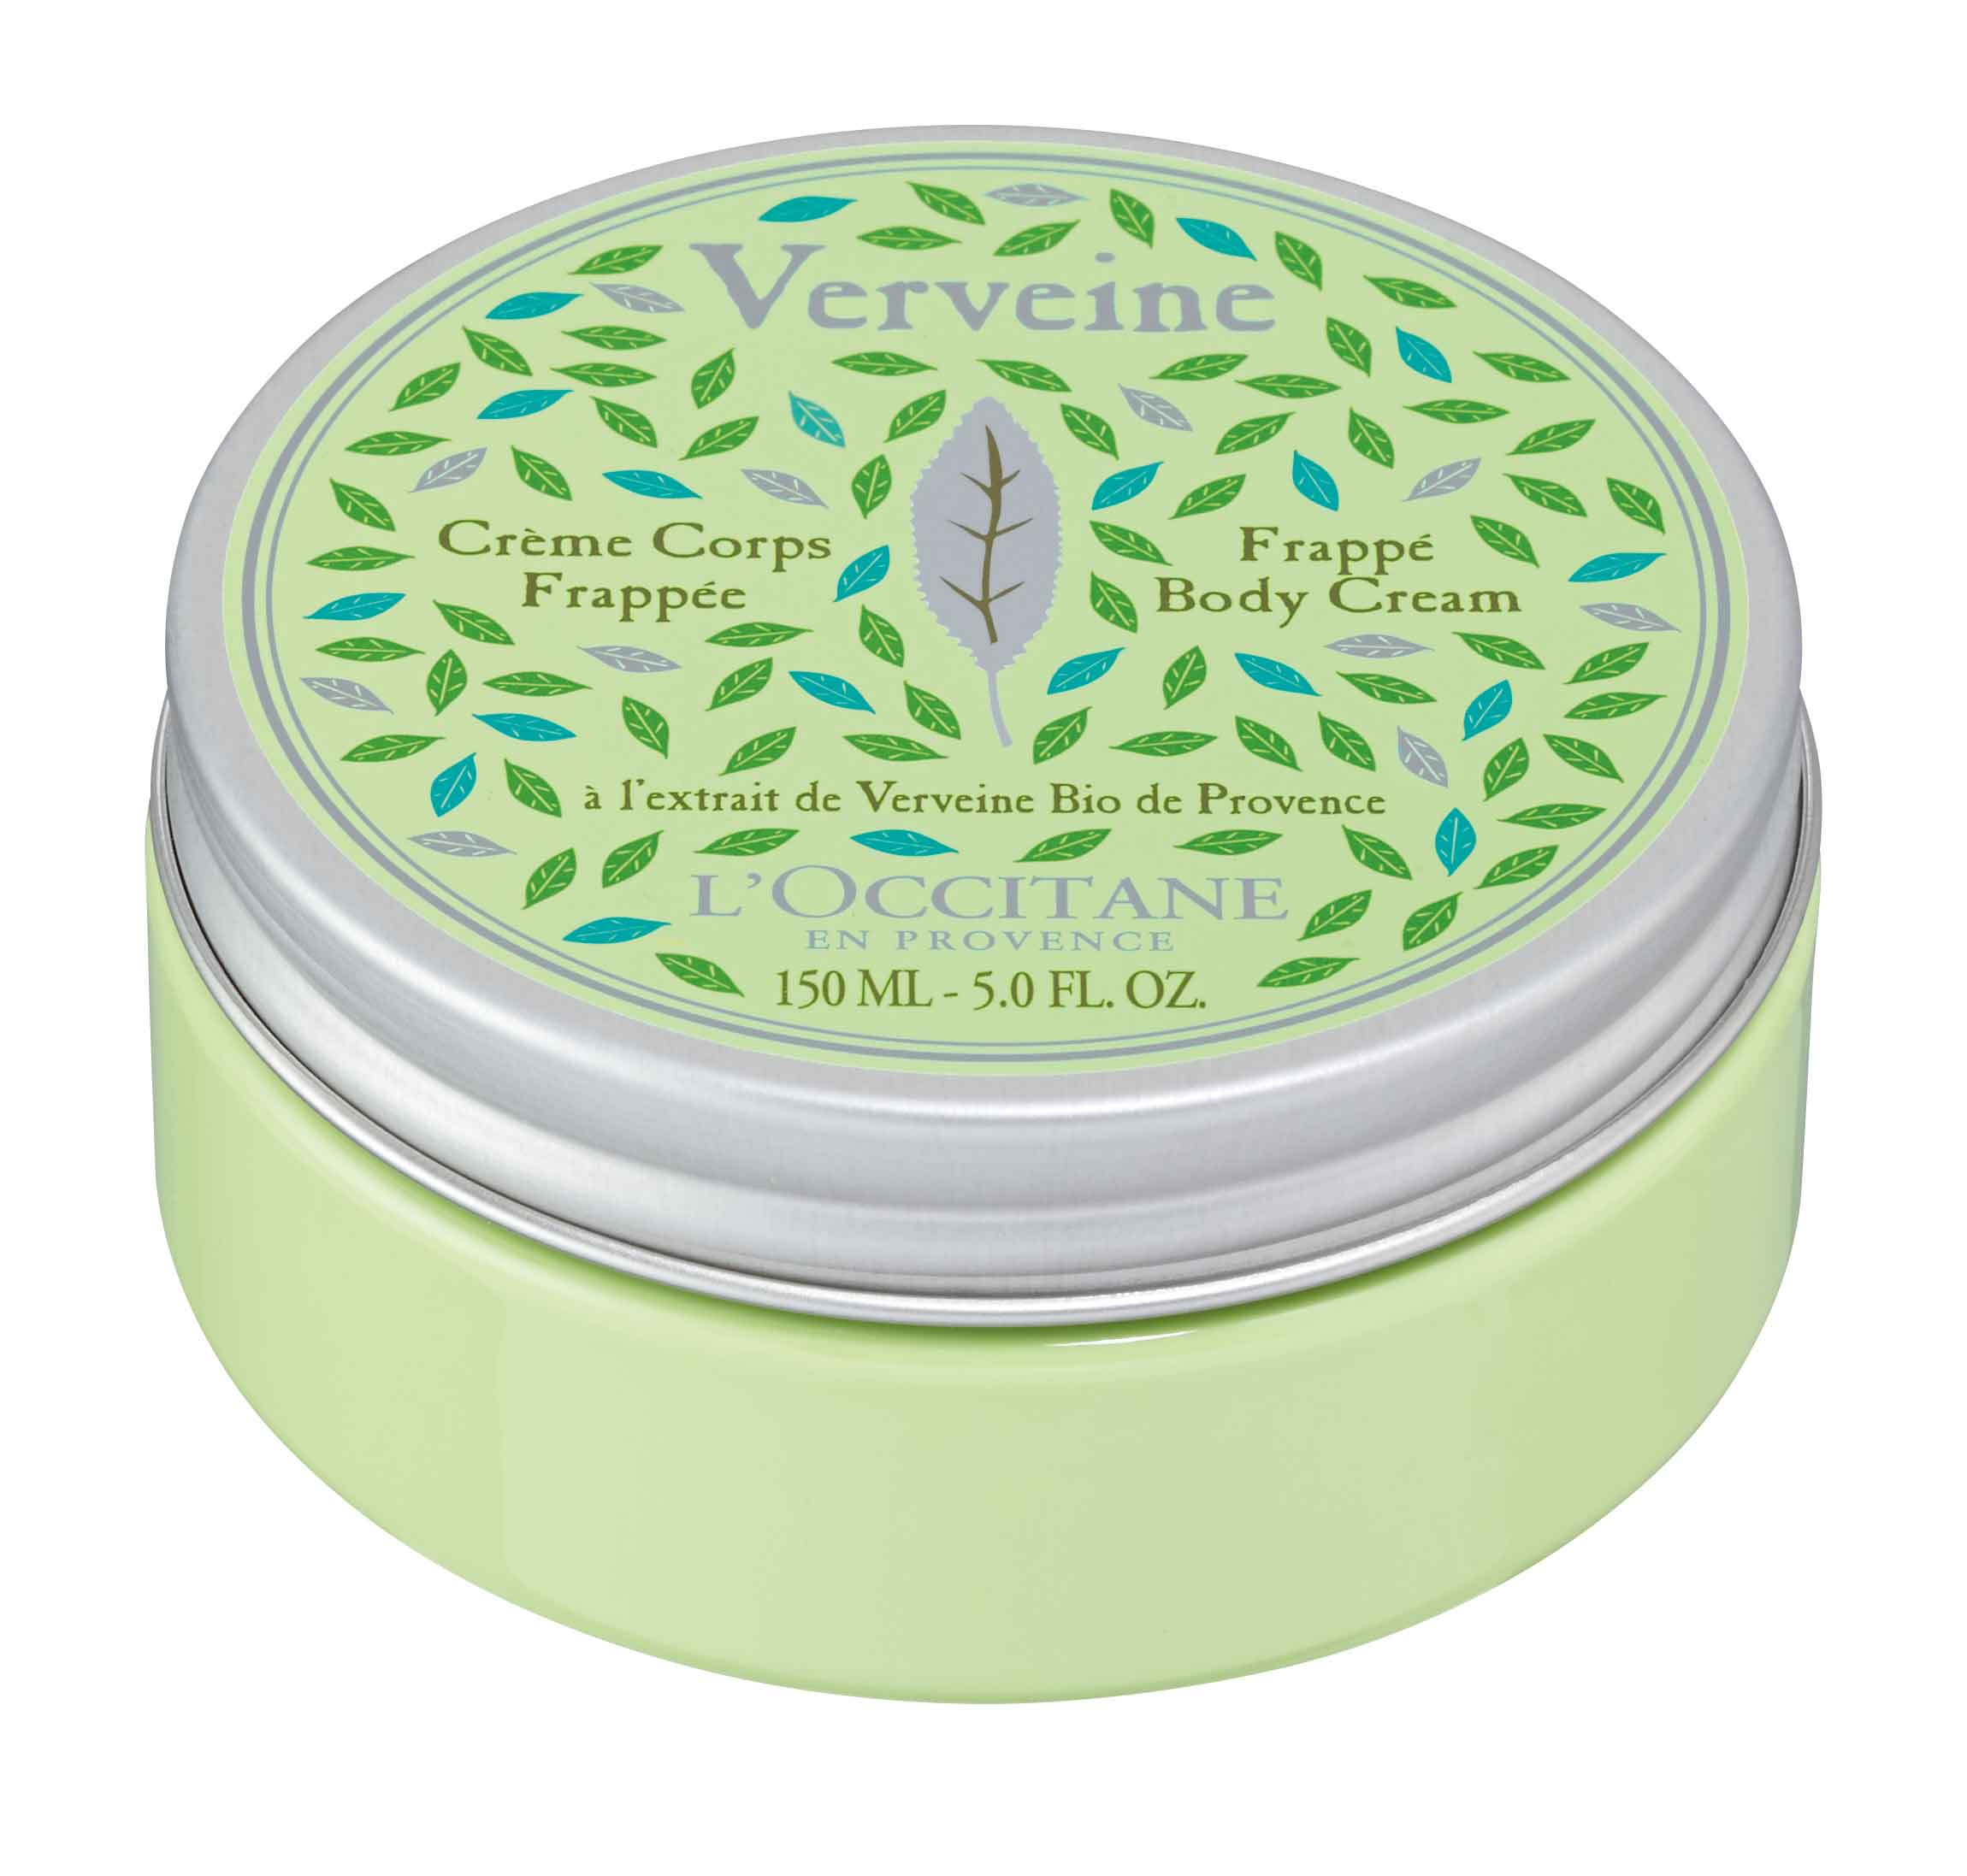 Verbena Frappé Body Cream